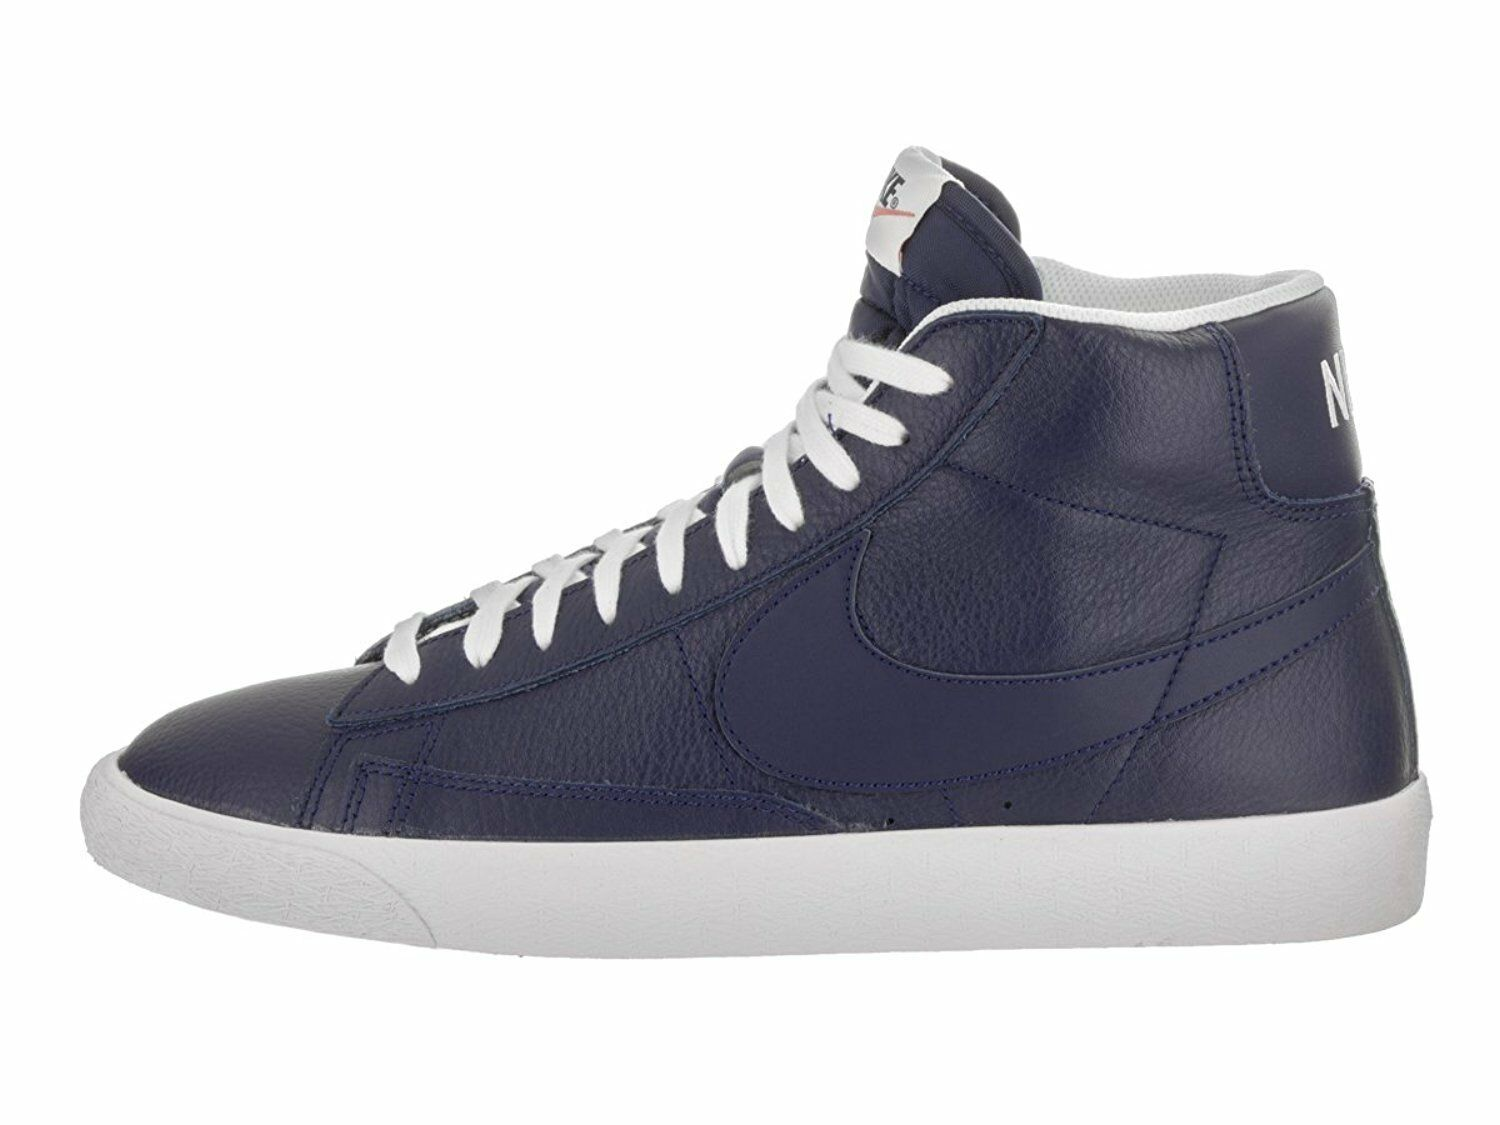 NIKE MENS BLAZER MID PRM FASHION SNEAKERS